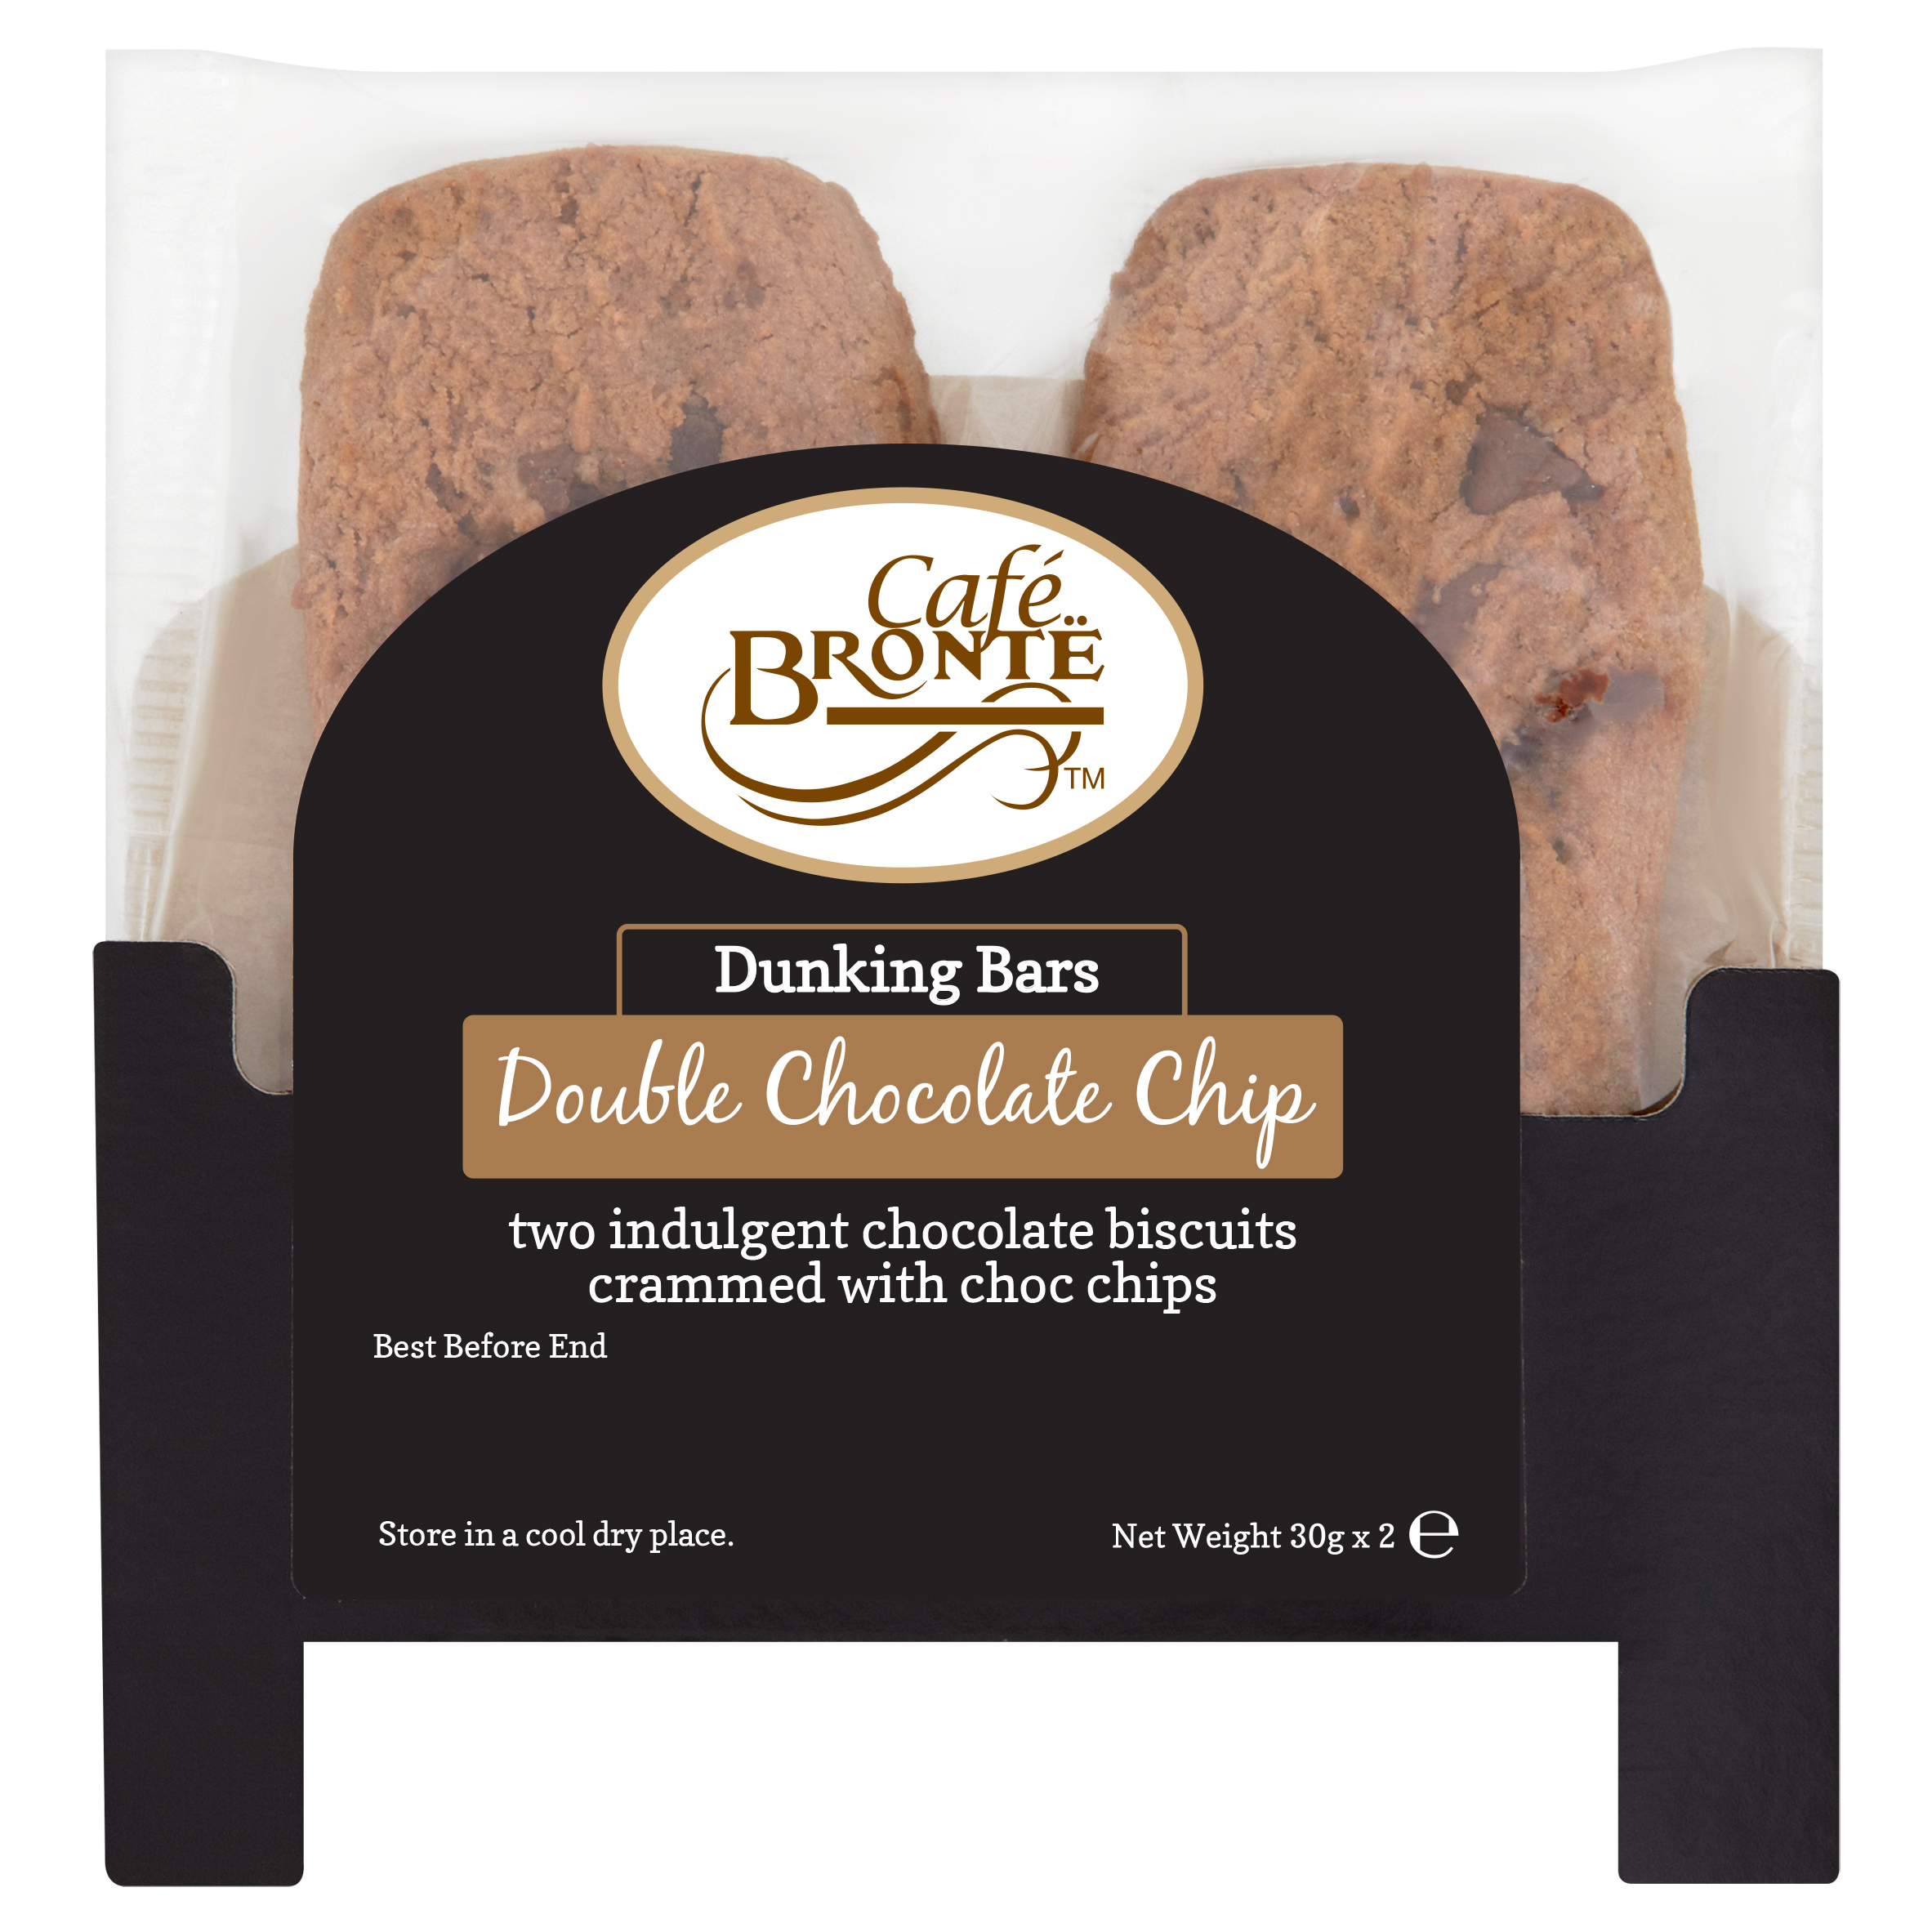 Double Choc Chip Dunking Bars